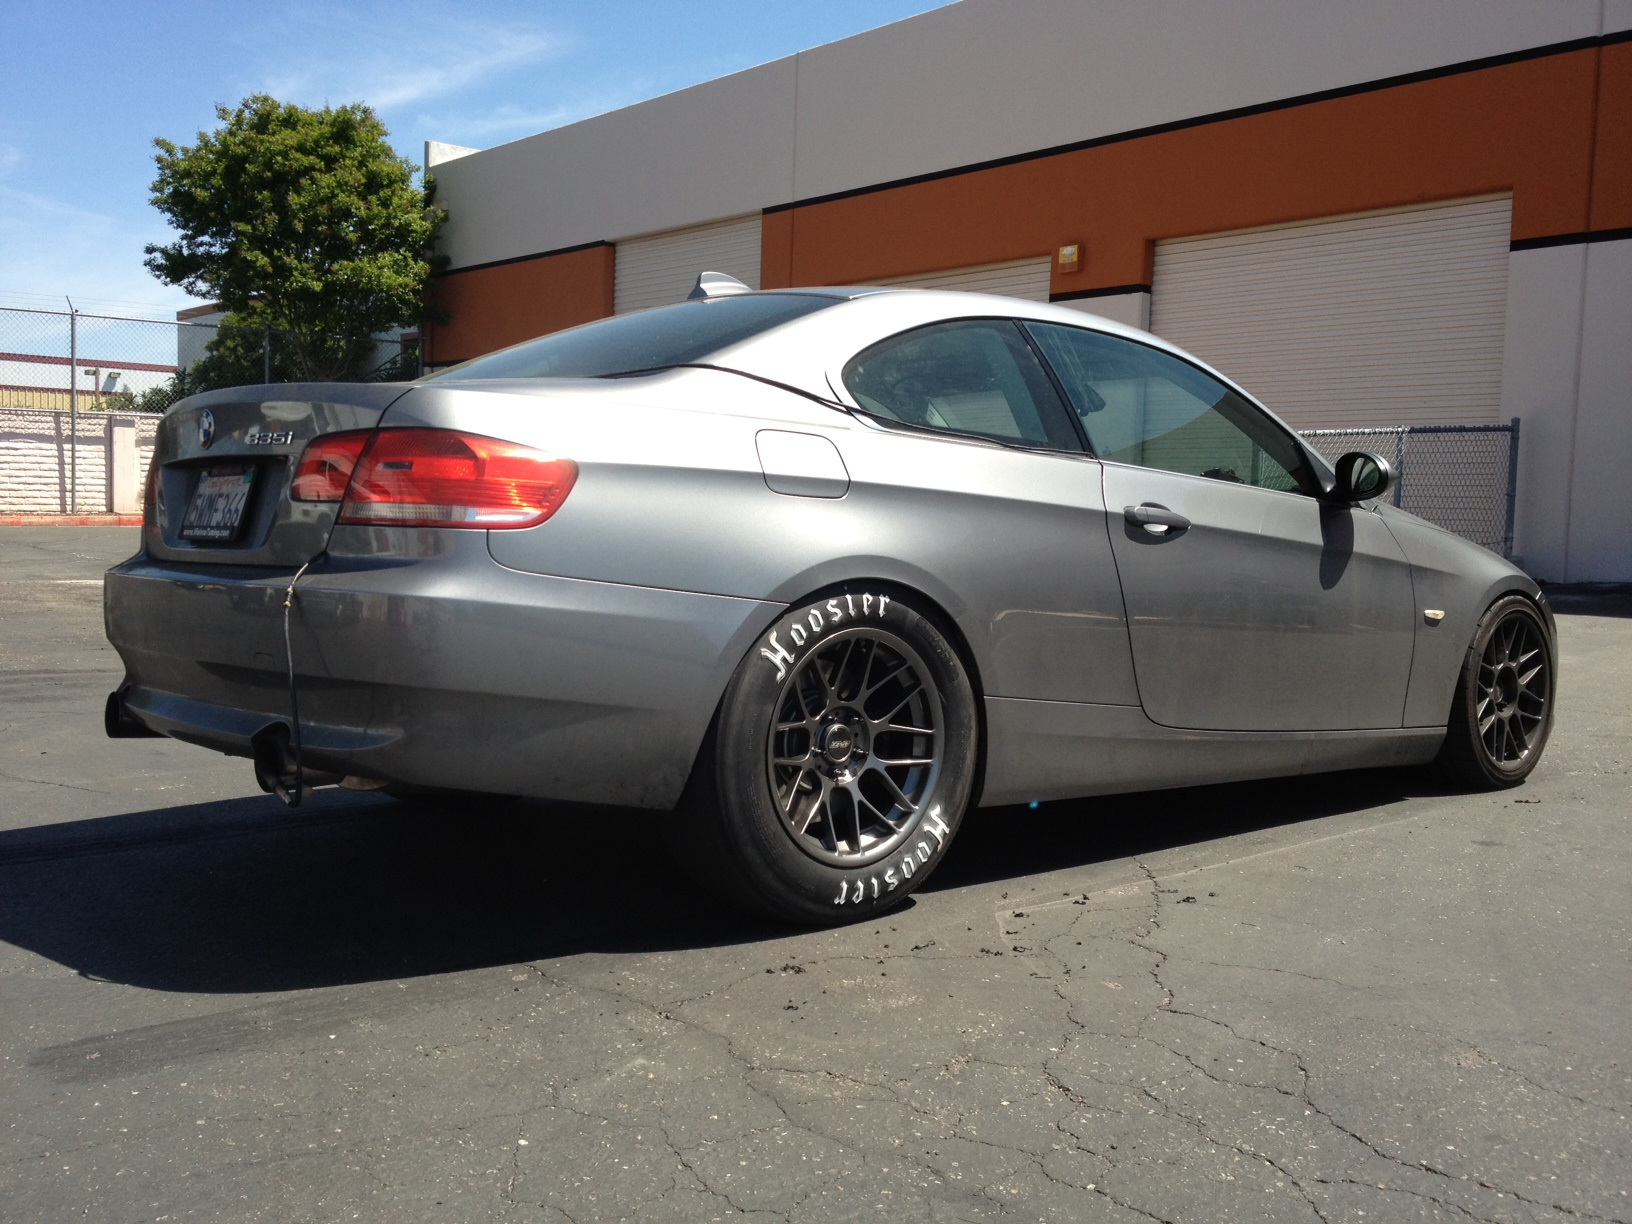 2007 BMW 335i VishnuFFTEC Single Turbo Procede 14 mile Drag